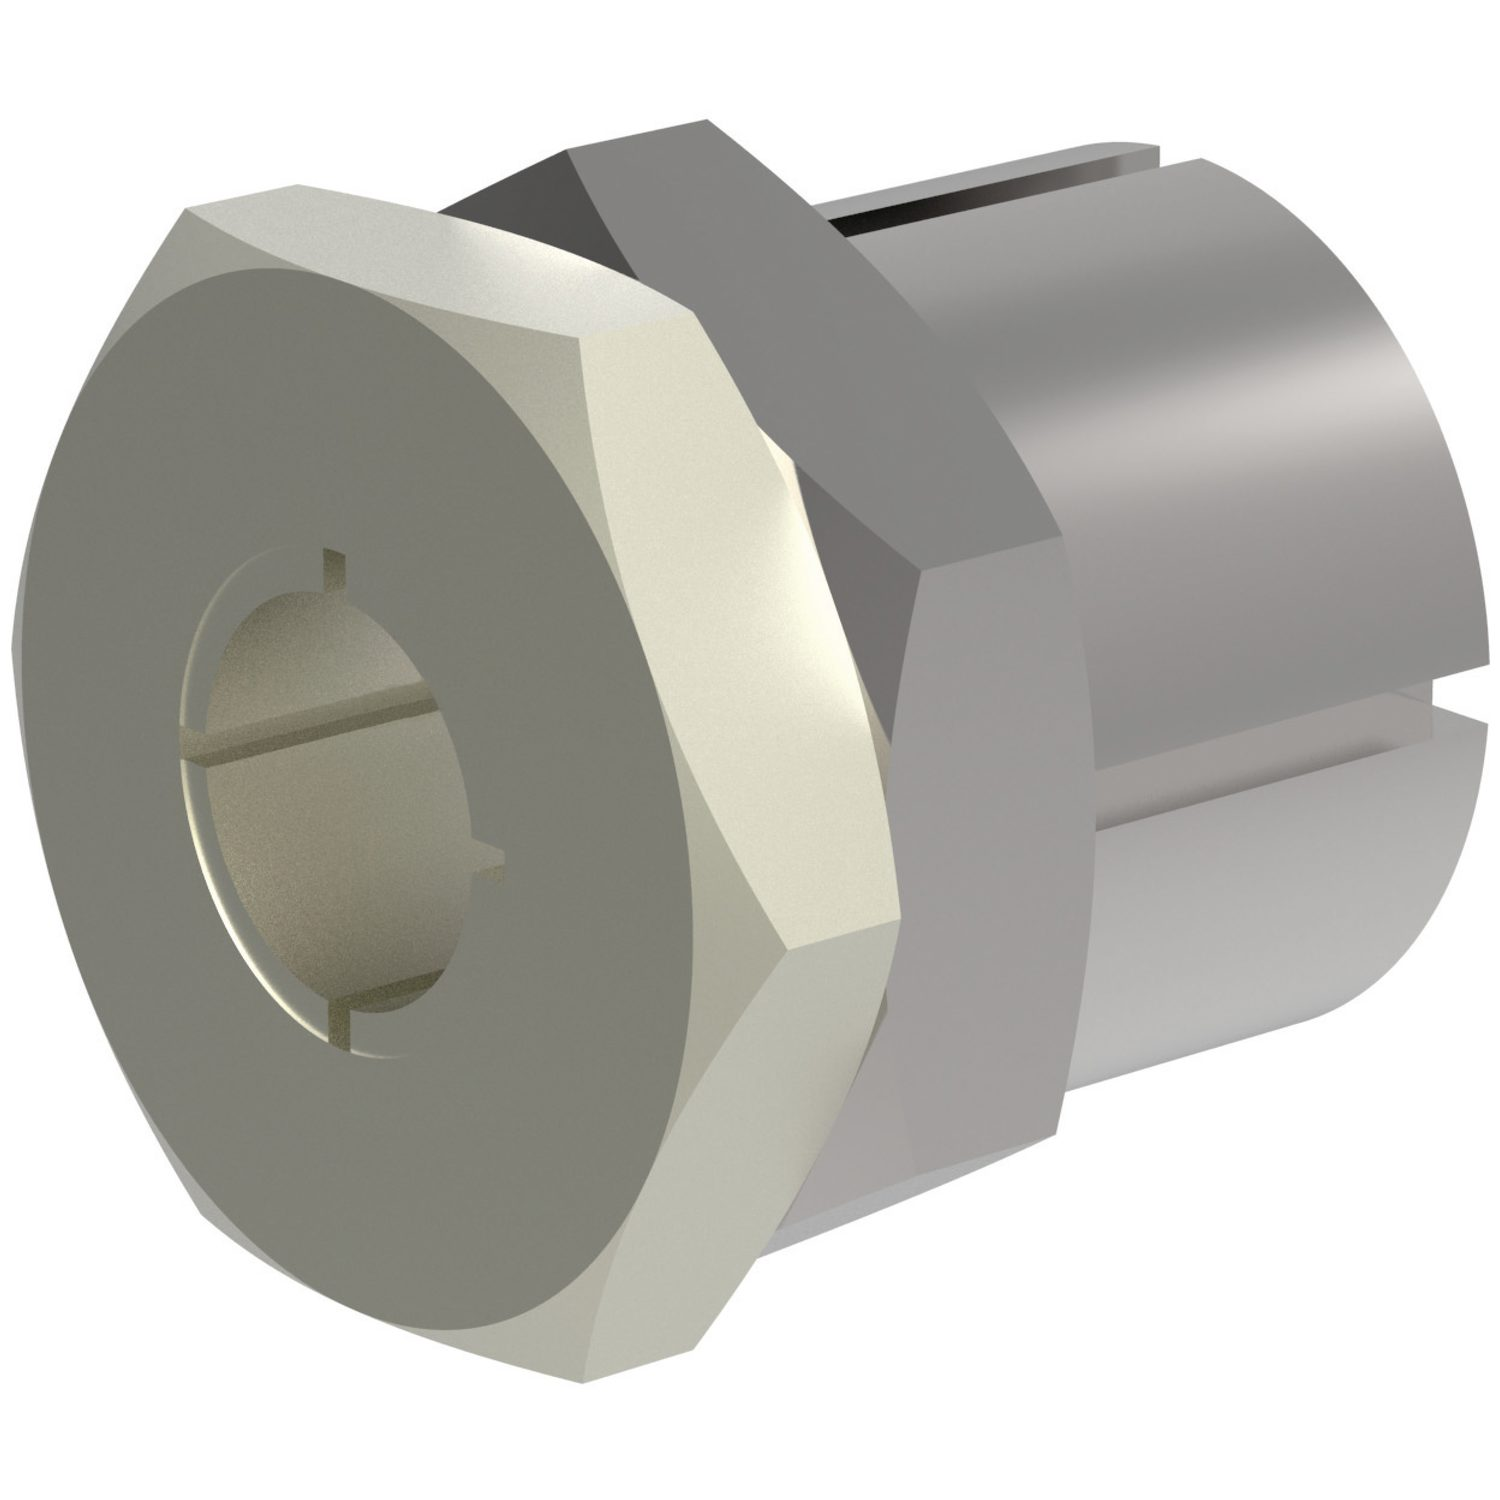 R3222 - Steel Taper Bushes